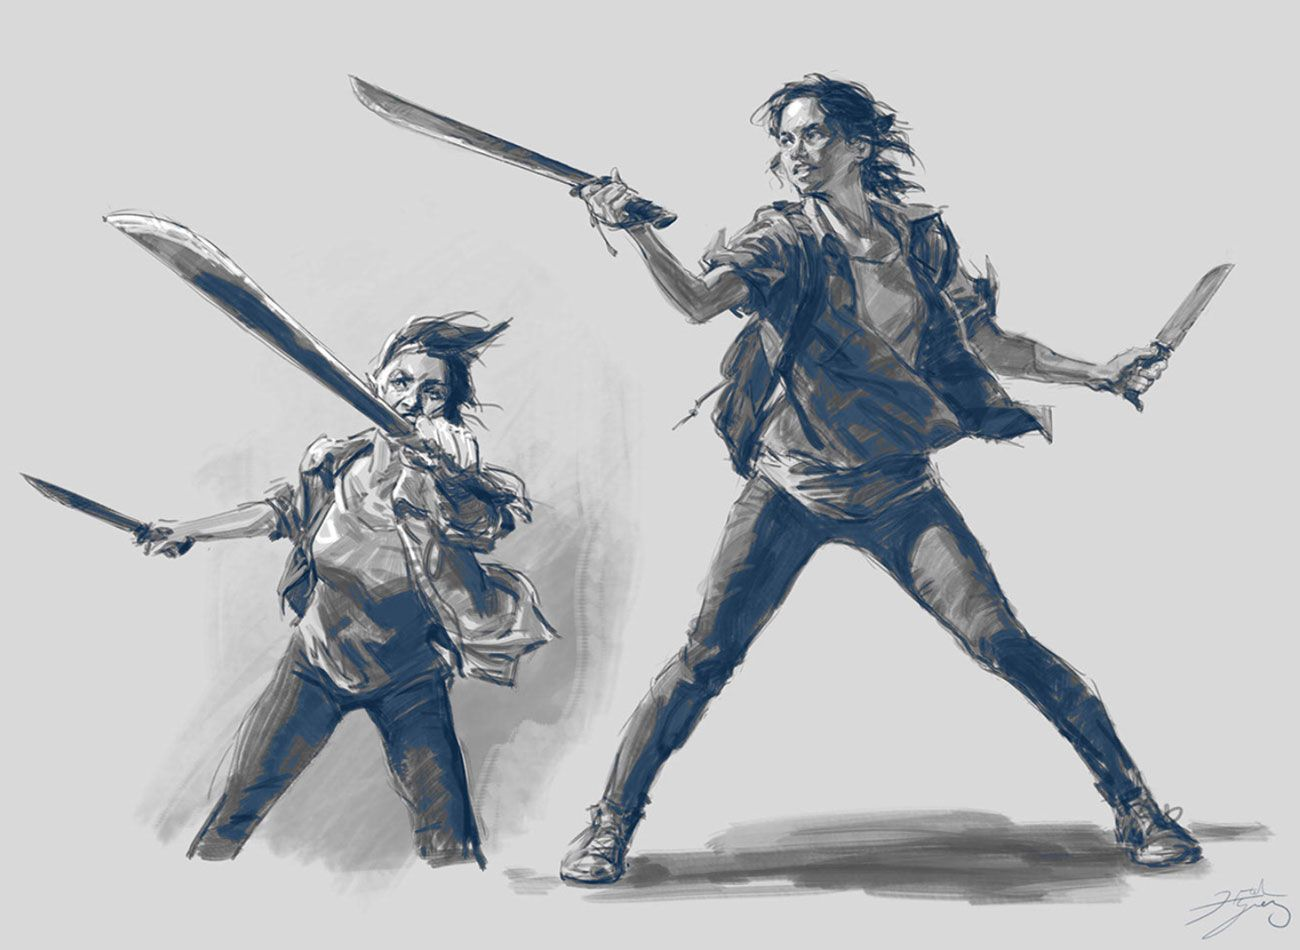 Ellie Combat Art from The Last of Us Part II #art #artwork #videogames #gameart #conceptart #illustration #thelastofuspart2 #thelastofuspartii #lastofuspart2 #lastofuspartii